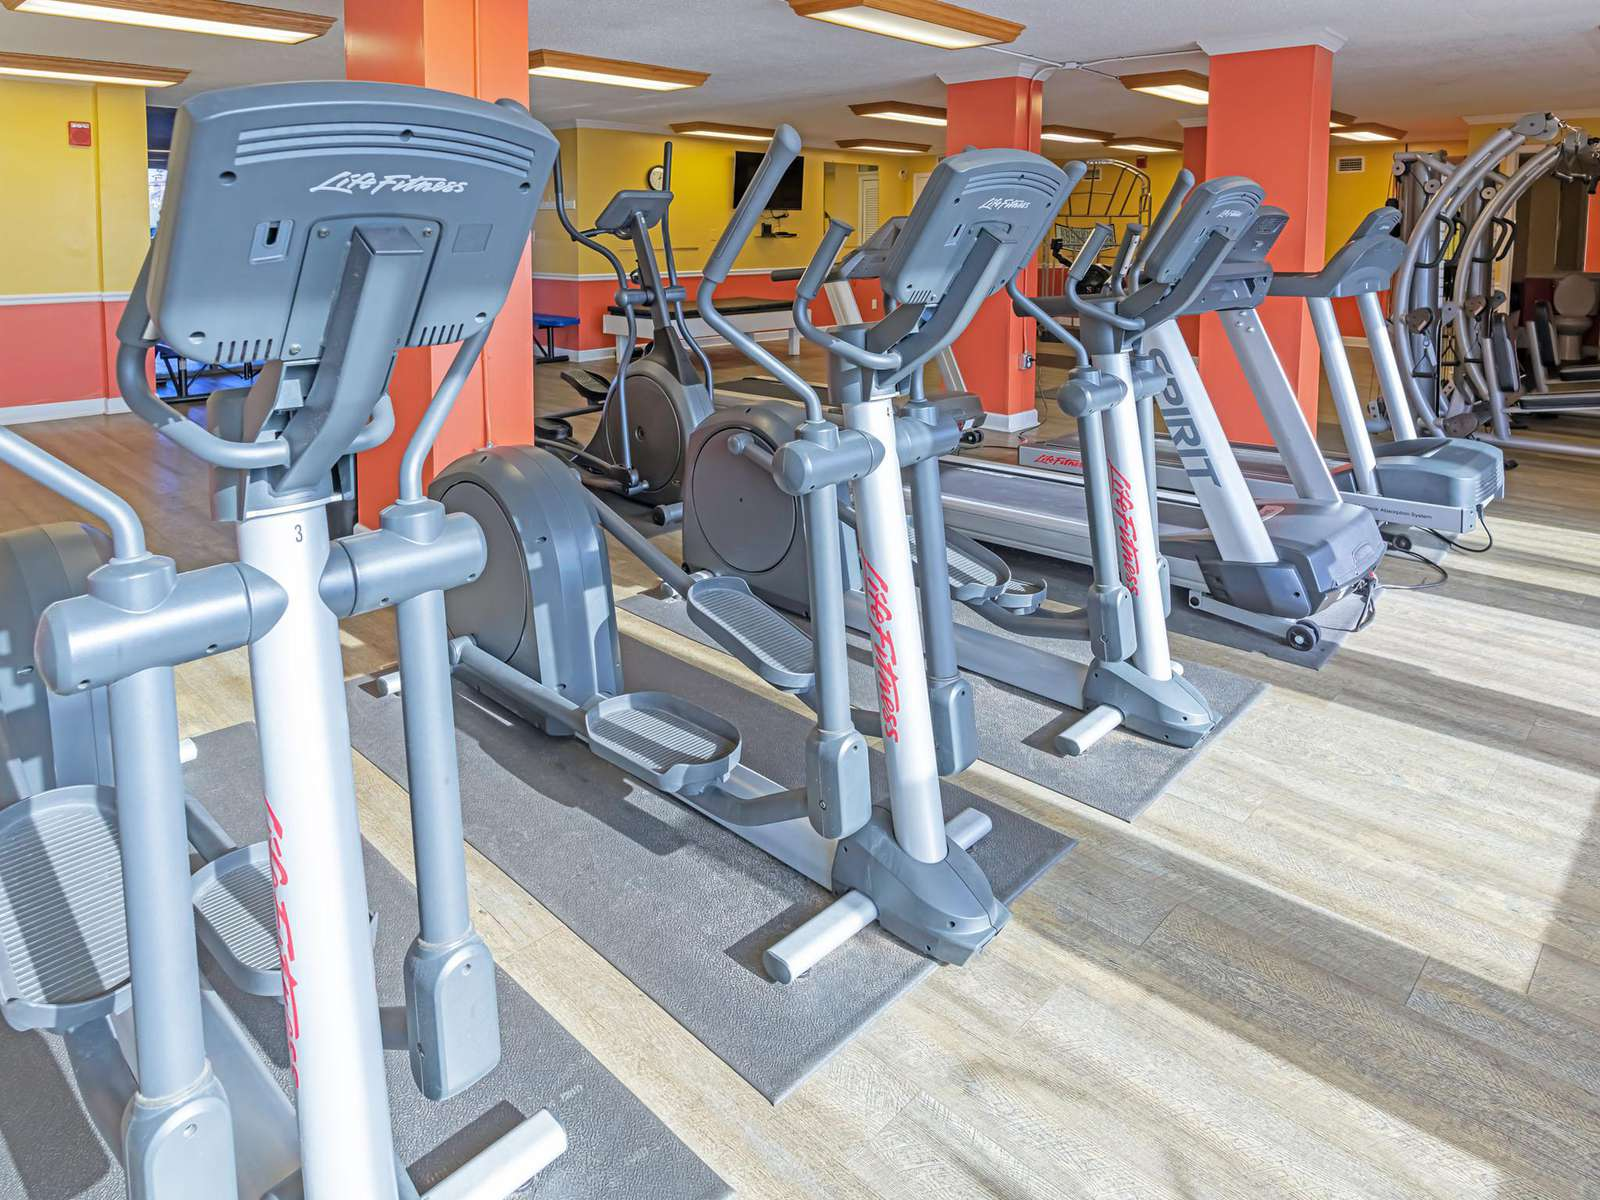 Exercise room is equipped with great machines!